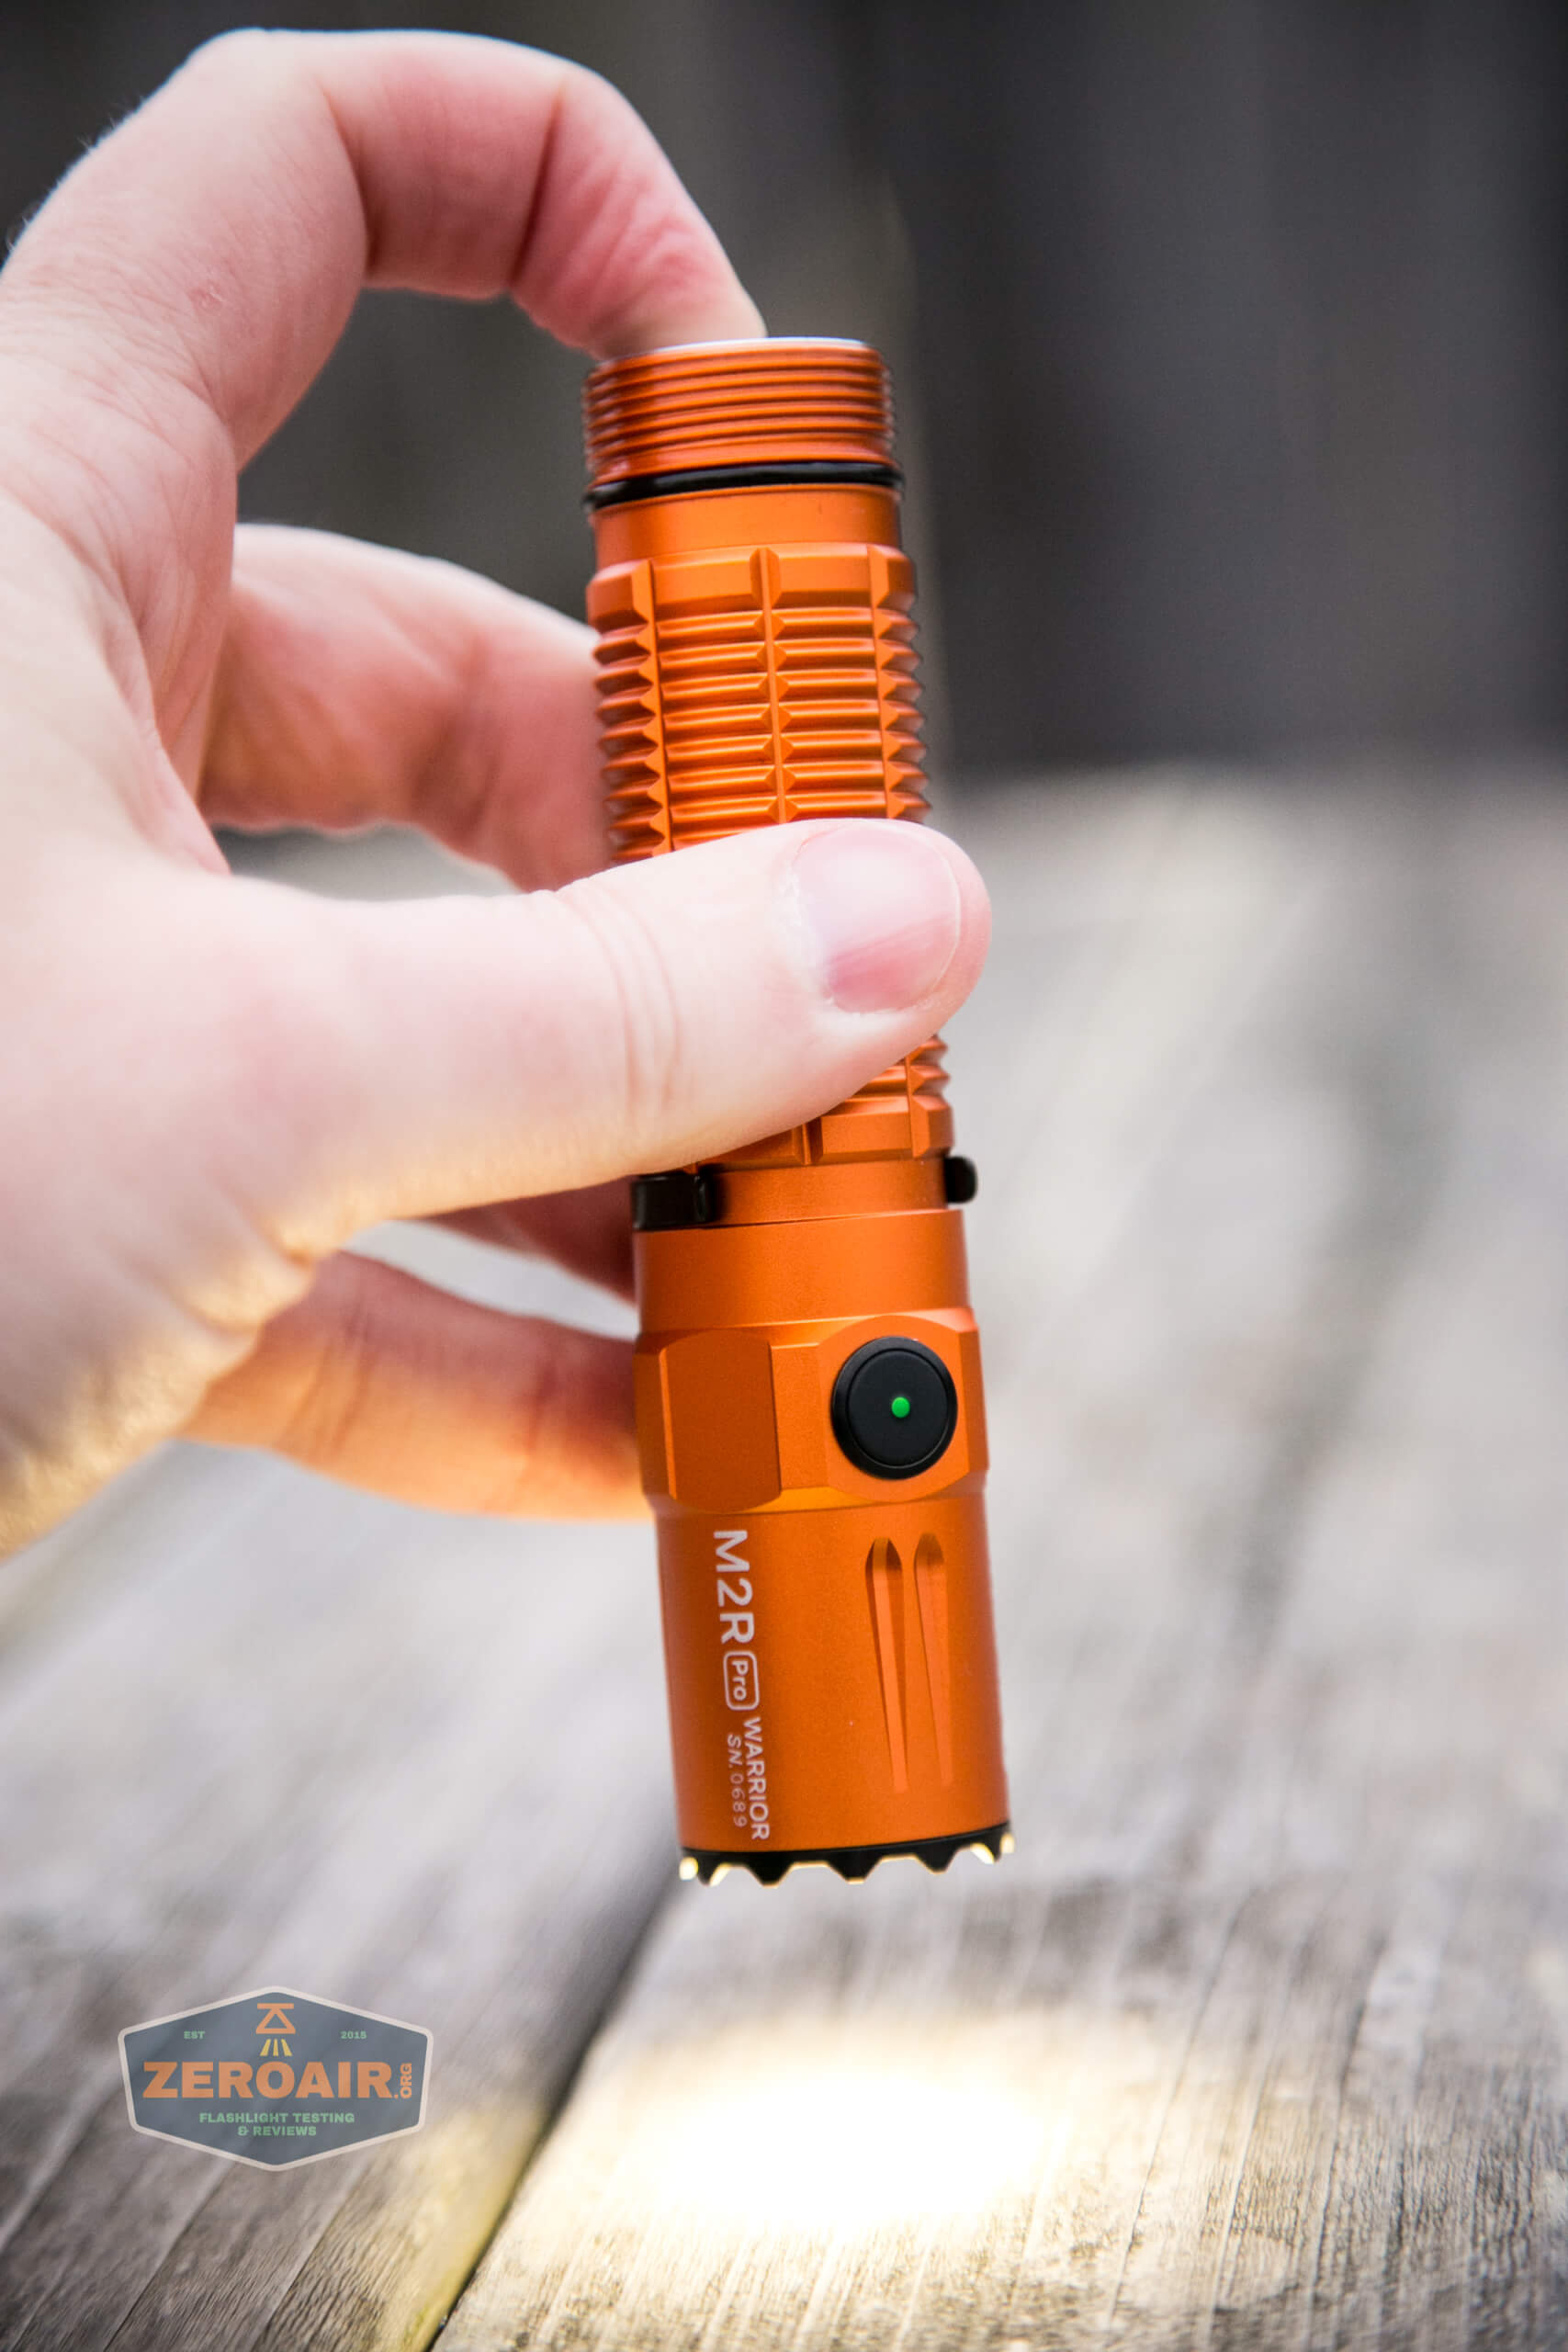 Olight M2R Pro Warrior Orange works without tailcap